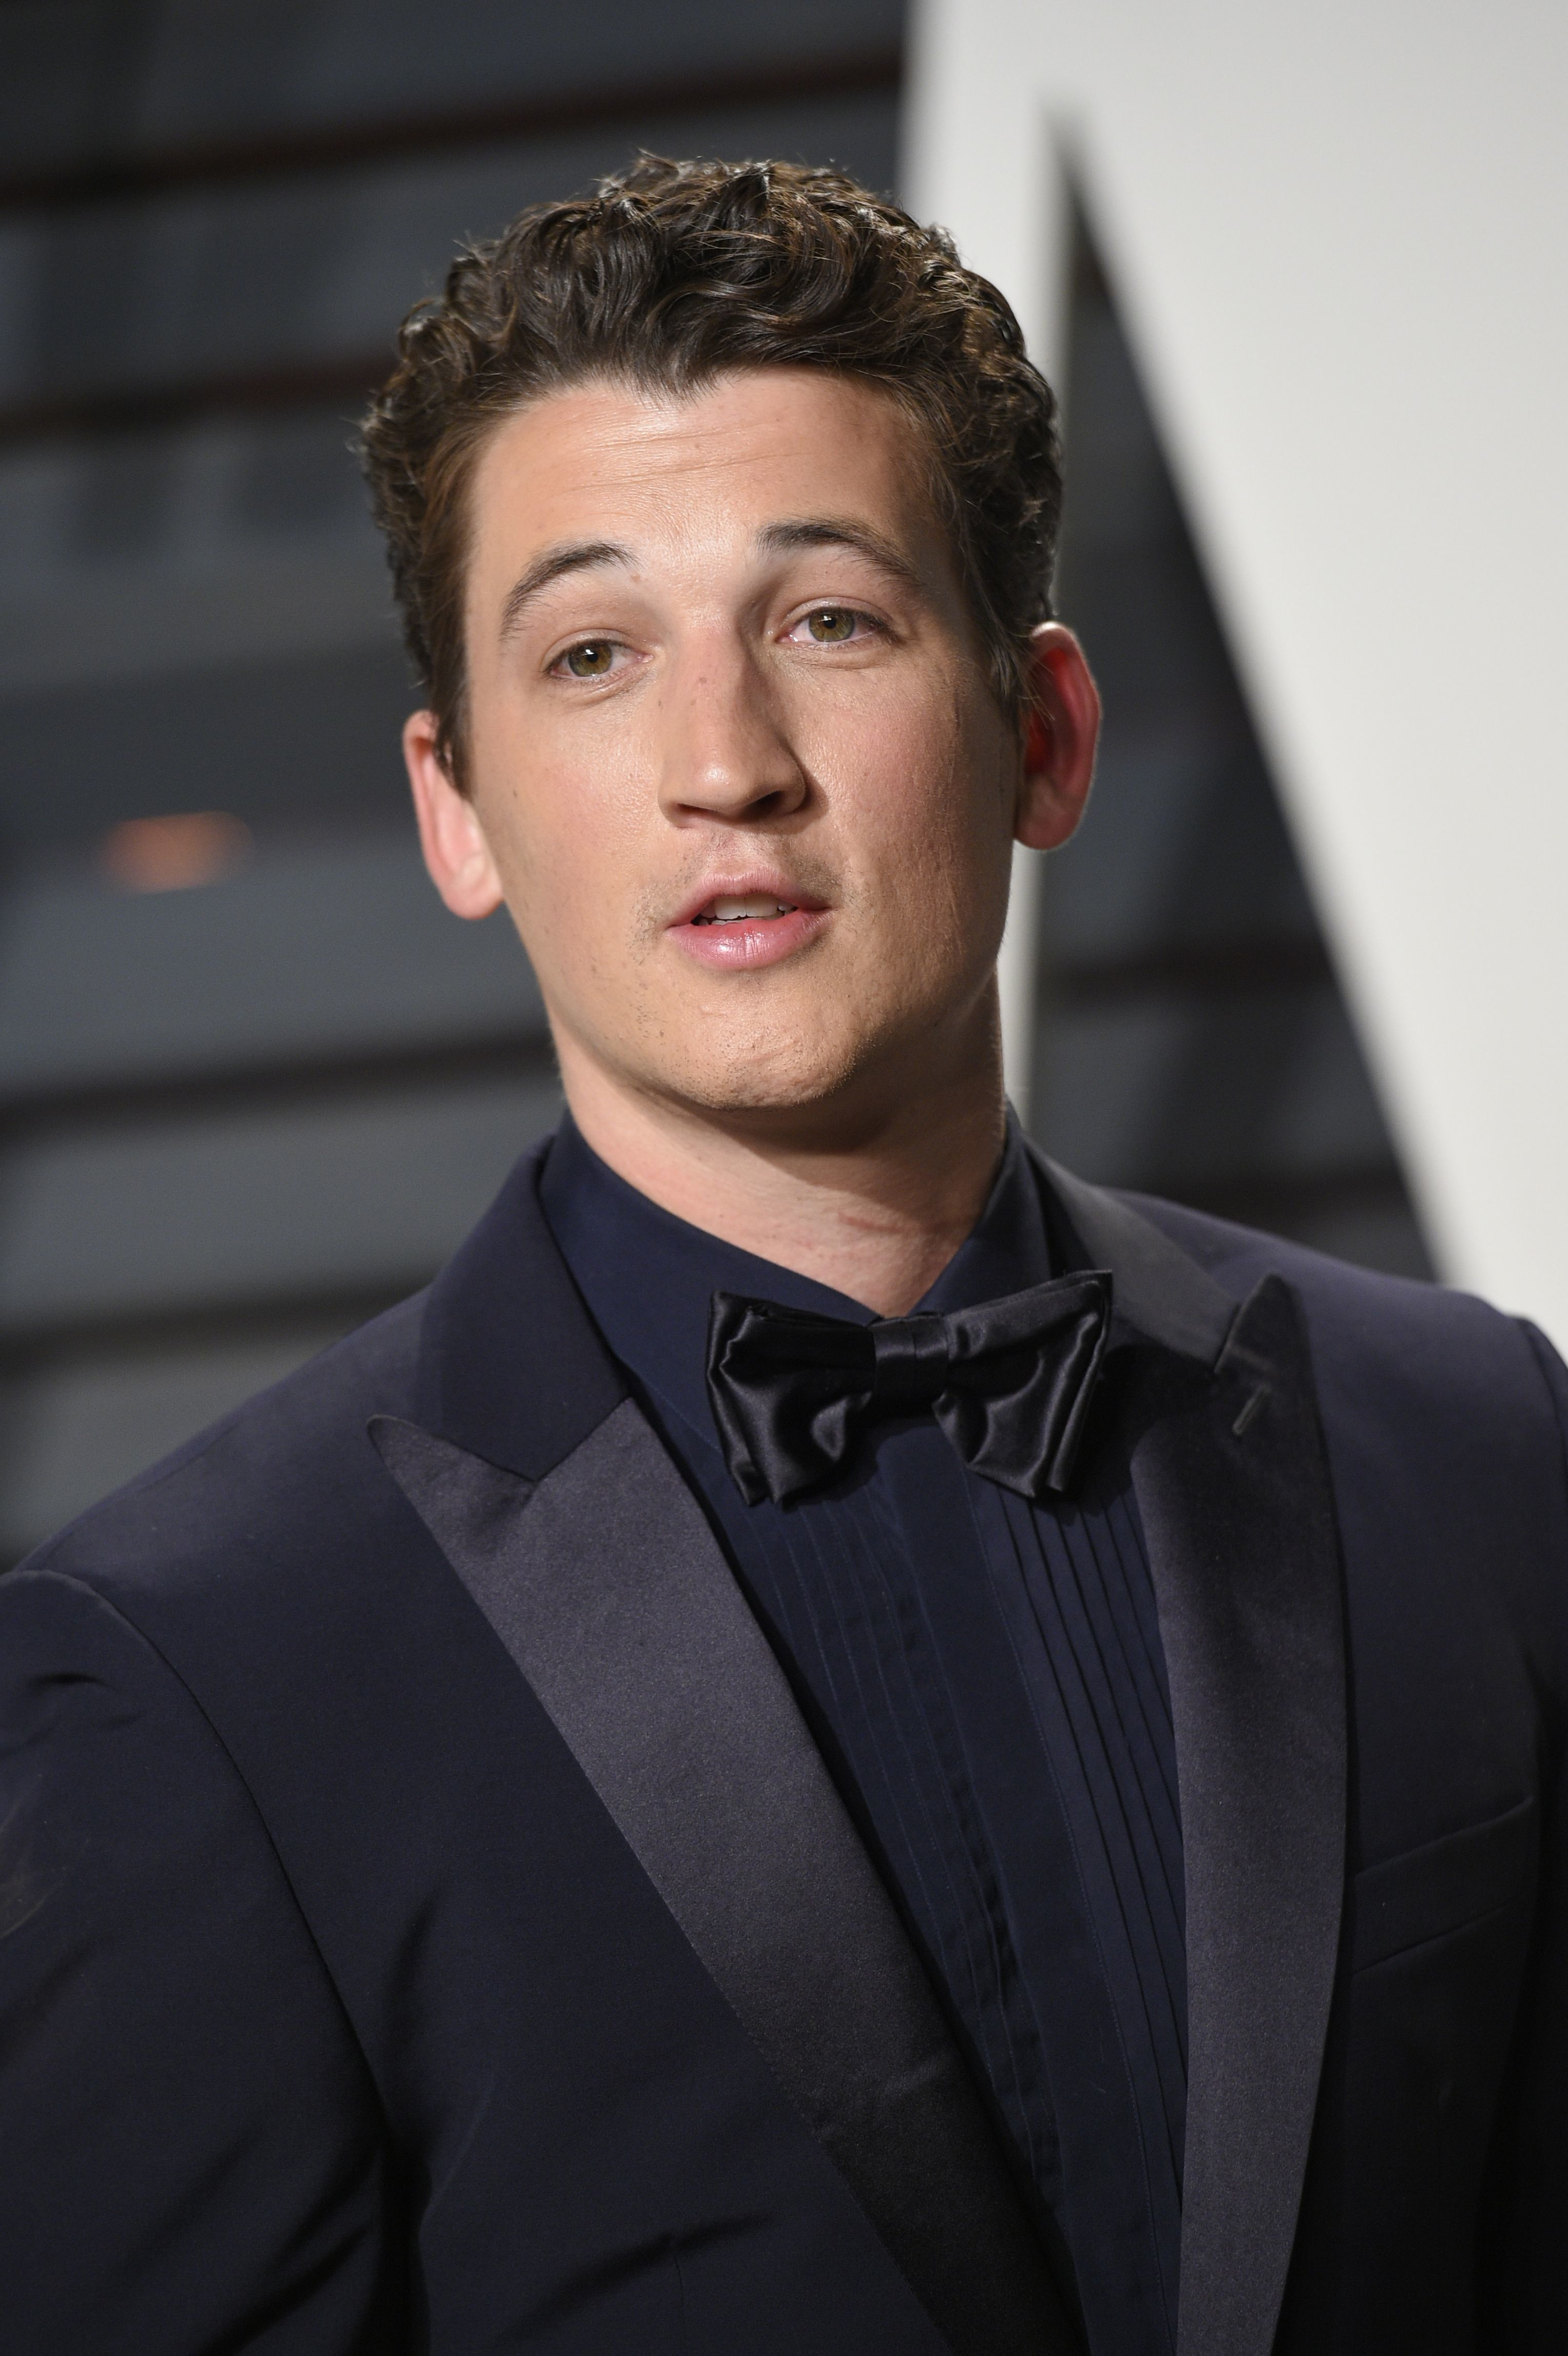 Miles Teller attends the Vanity Fair Oscar Party in Los Angeles on Feb. 26, 2017.